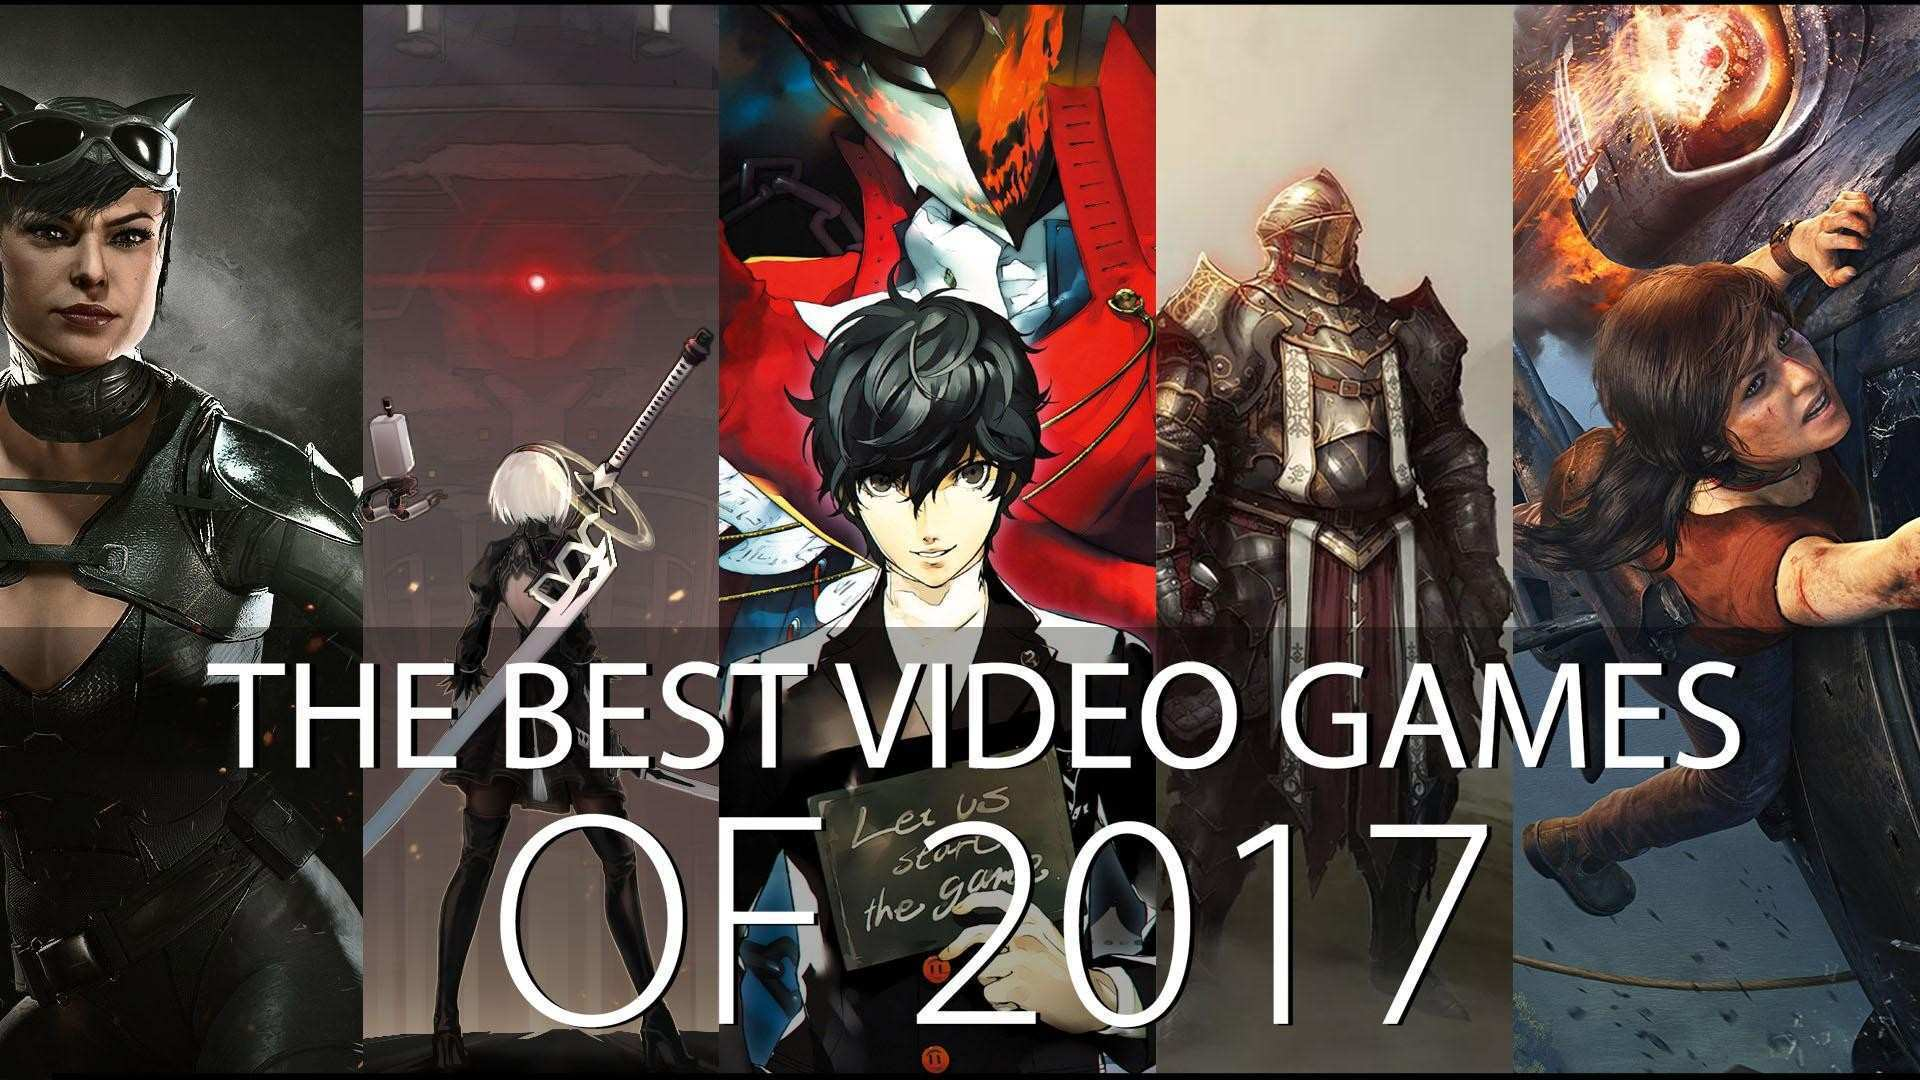 The 20 Best Video Games 2017